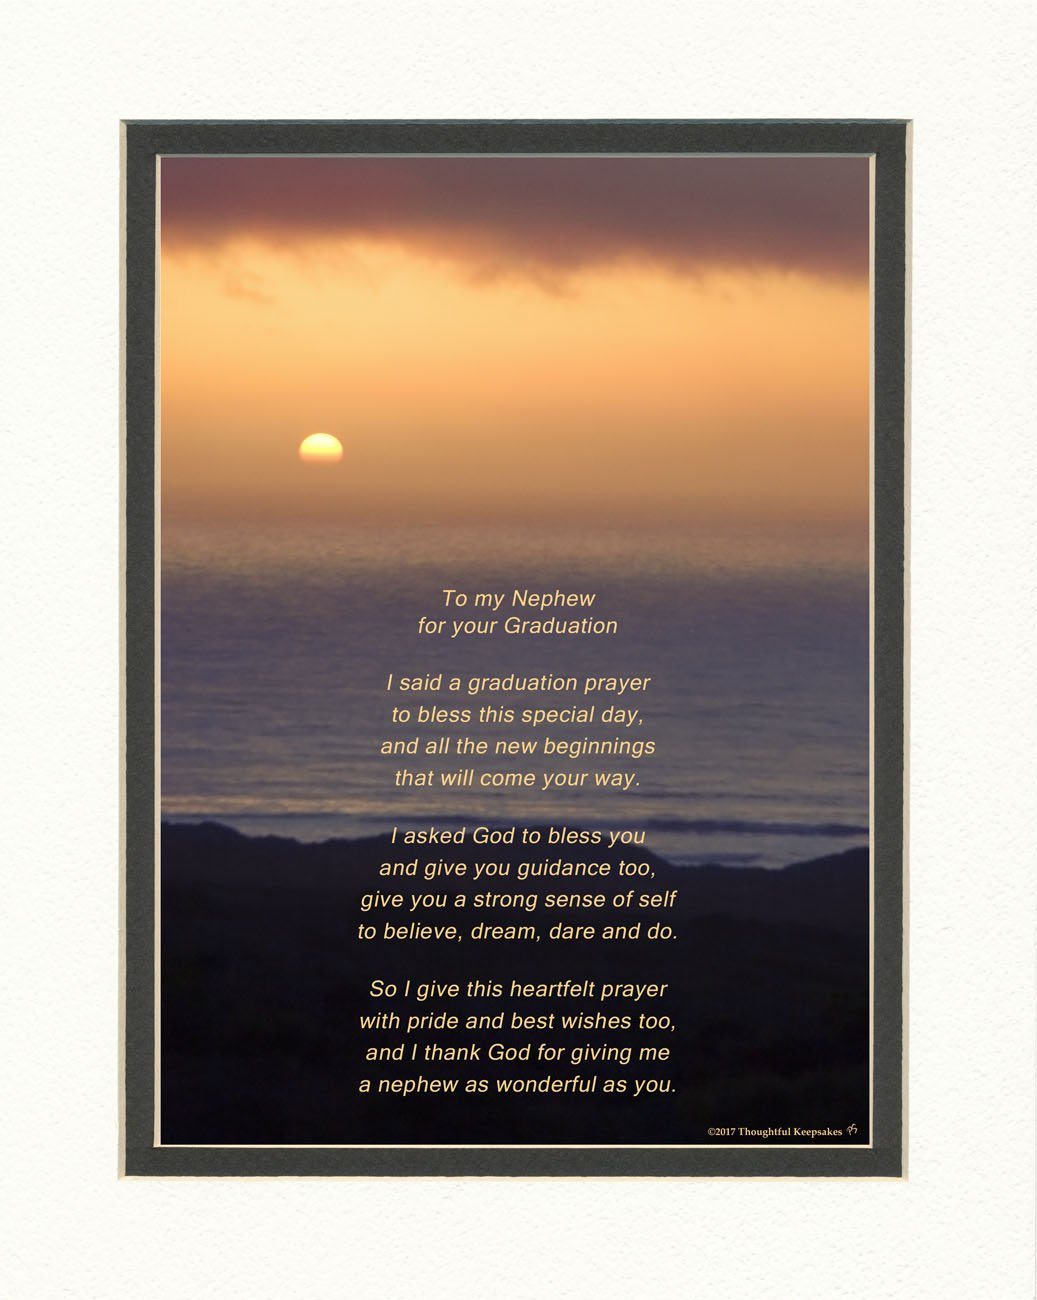 Nephew Graduation Gift with '' Nephew Graduation Prayer Poem'' Ocean Sunset Photo, 8x10 Double Matted. Special Keepsake Graduation Gifts for Nephew. Unique College and High School Grad Gifts. by Graduation Gifts (Image #1)